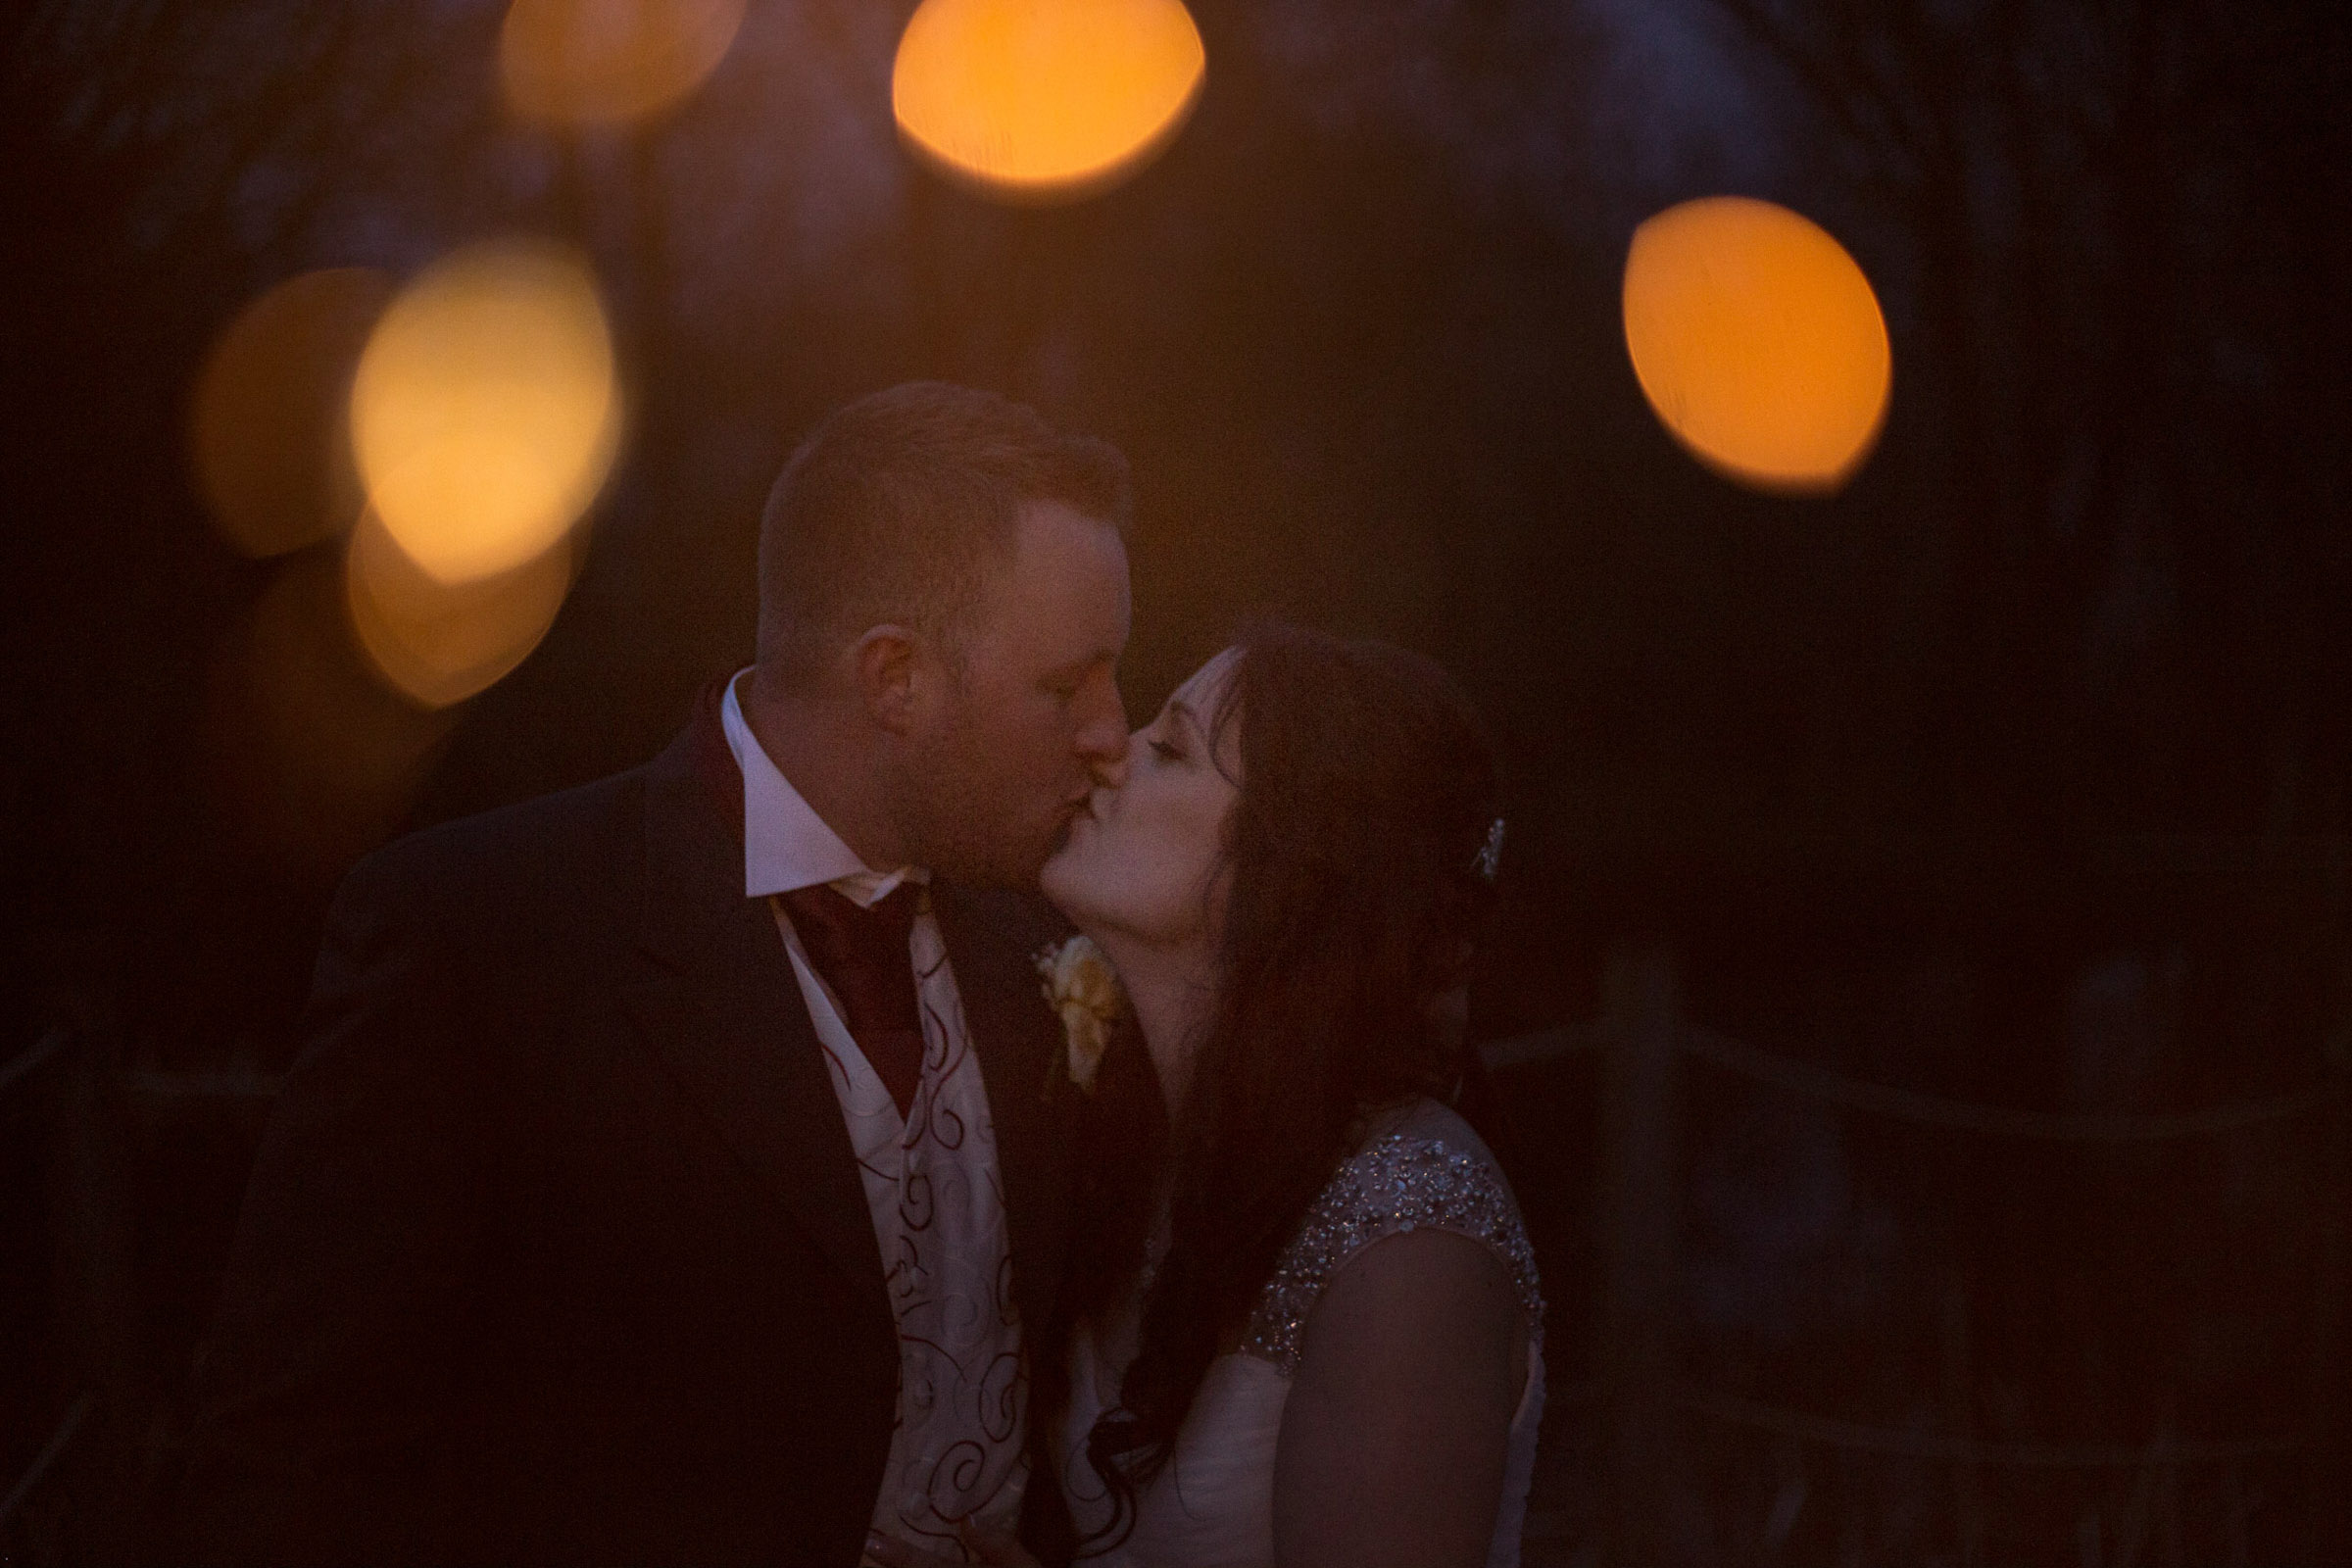 Wedding Photograph using Sparklers